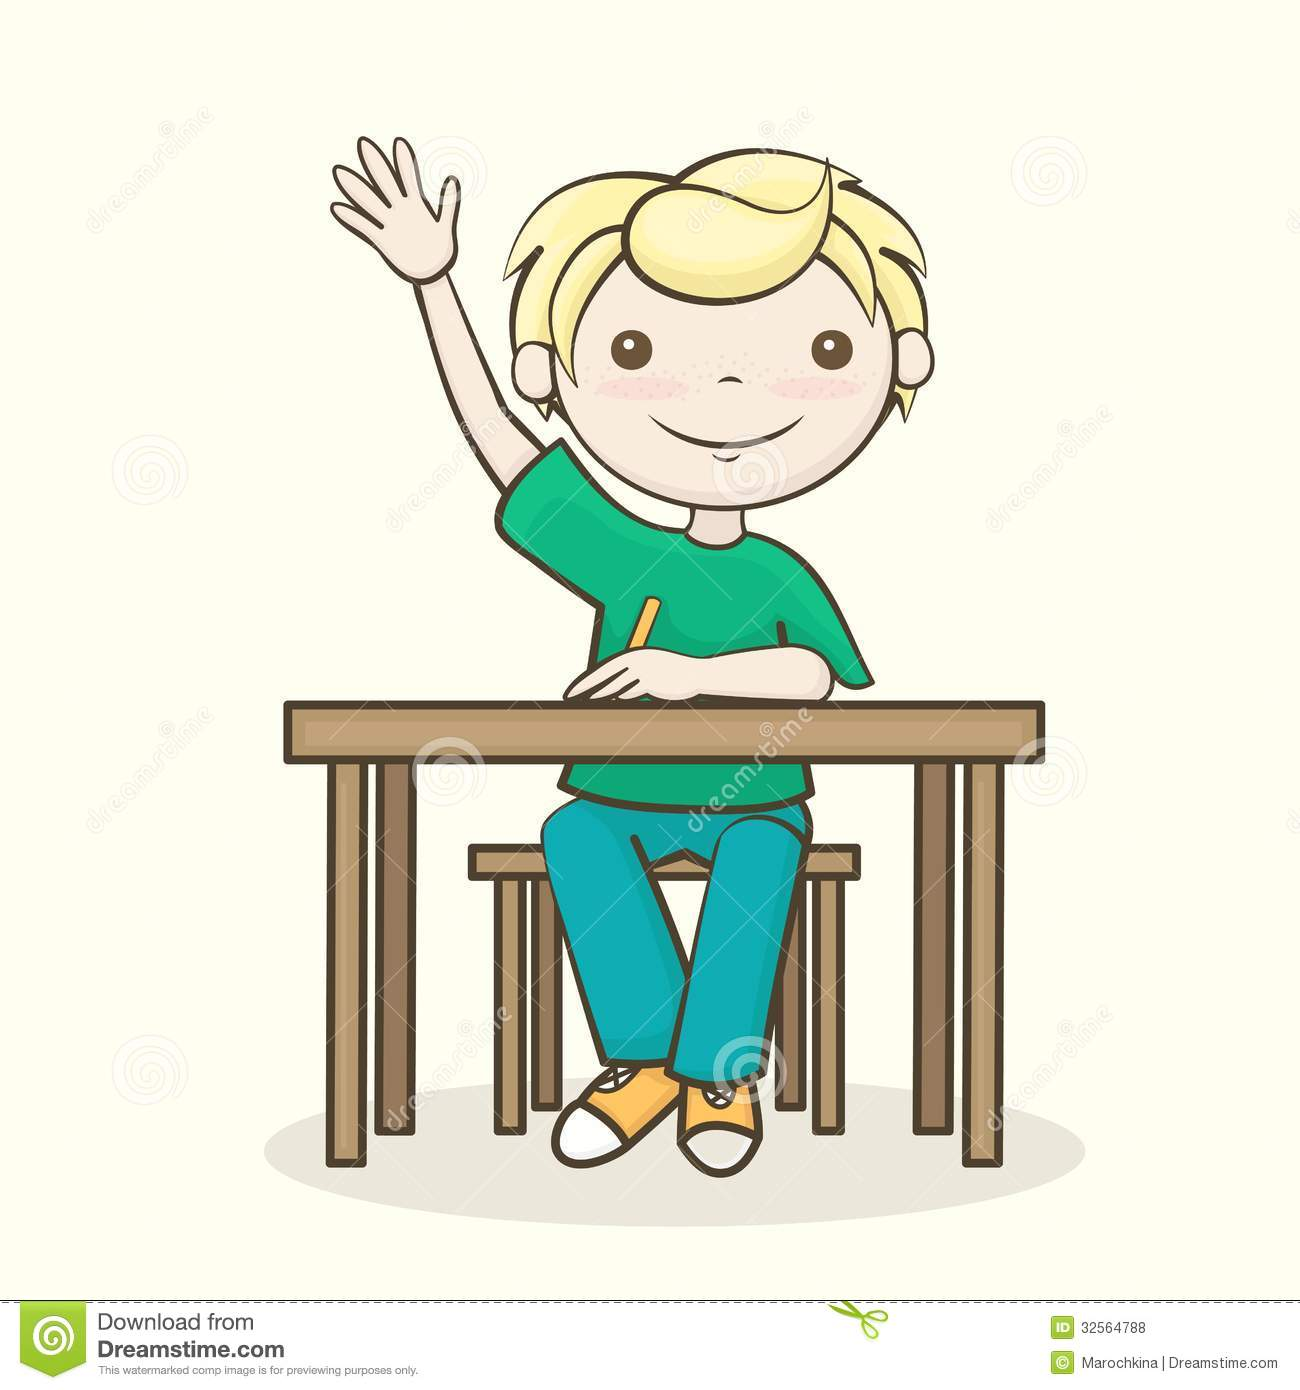 Students raising hands clip art.